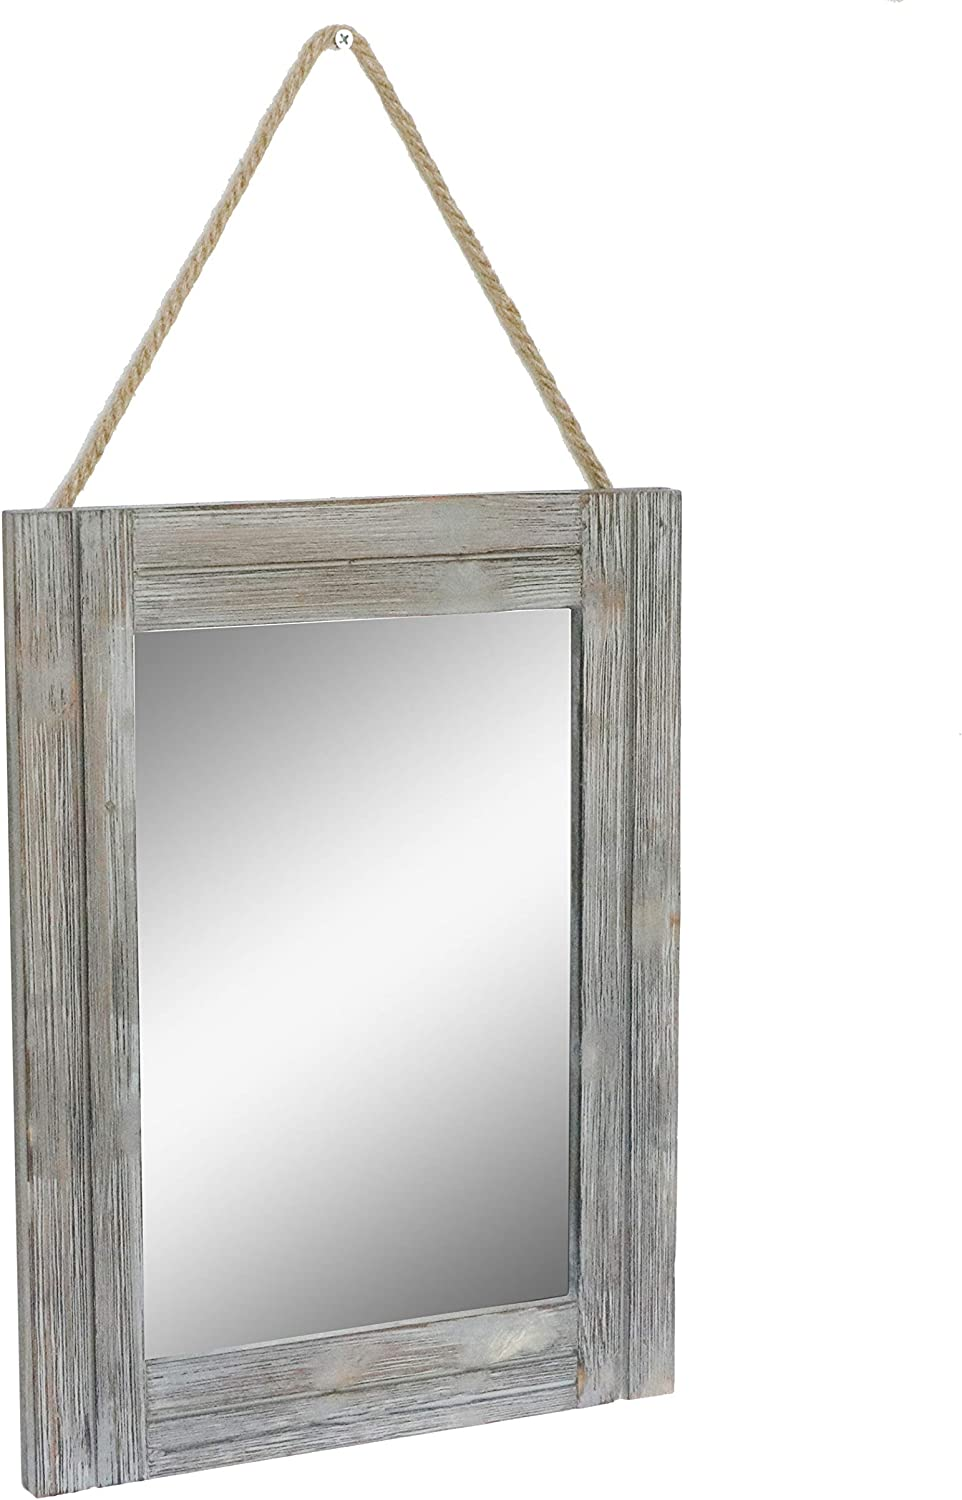 EMAISON 16 X 12 Inch Rustic Wood Framed Wall Mirror with Hanging Rope for Farmhouse Décor, for Entryway, Bedroom, Bathroom, Dresser, Gray